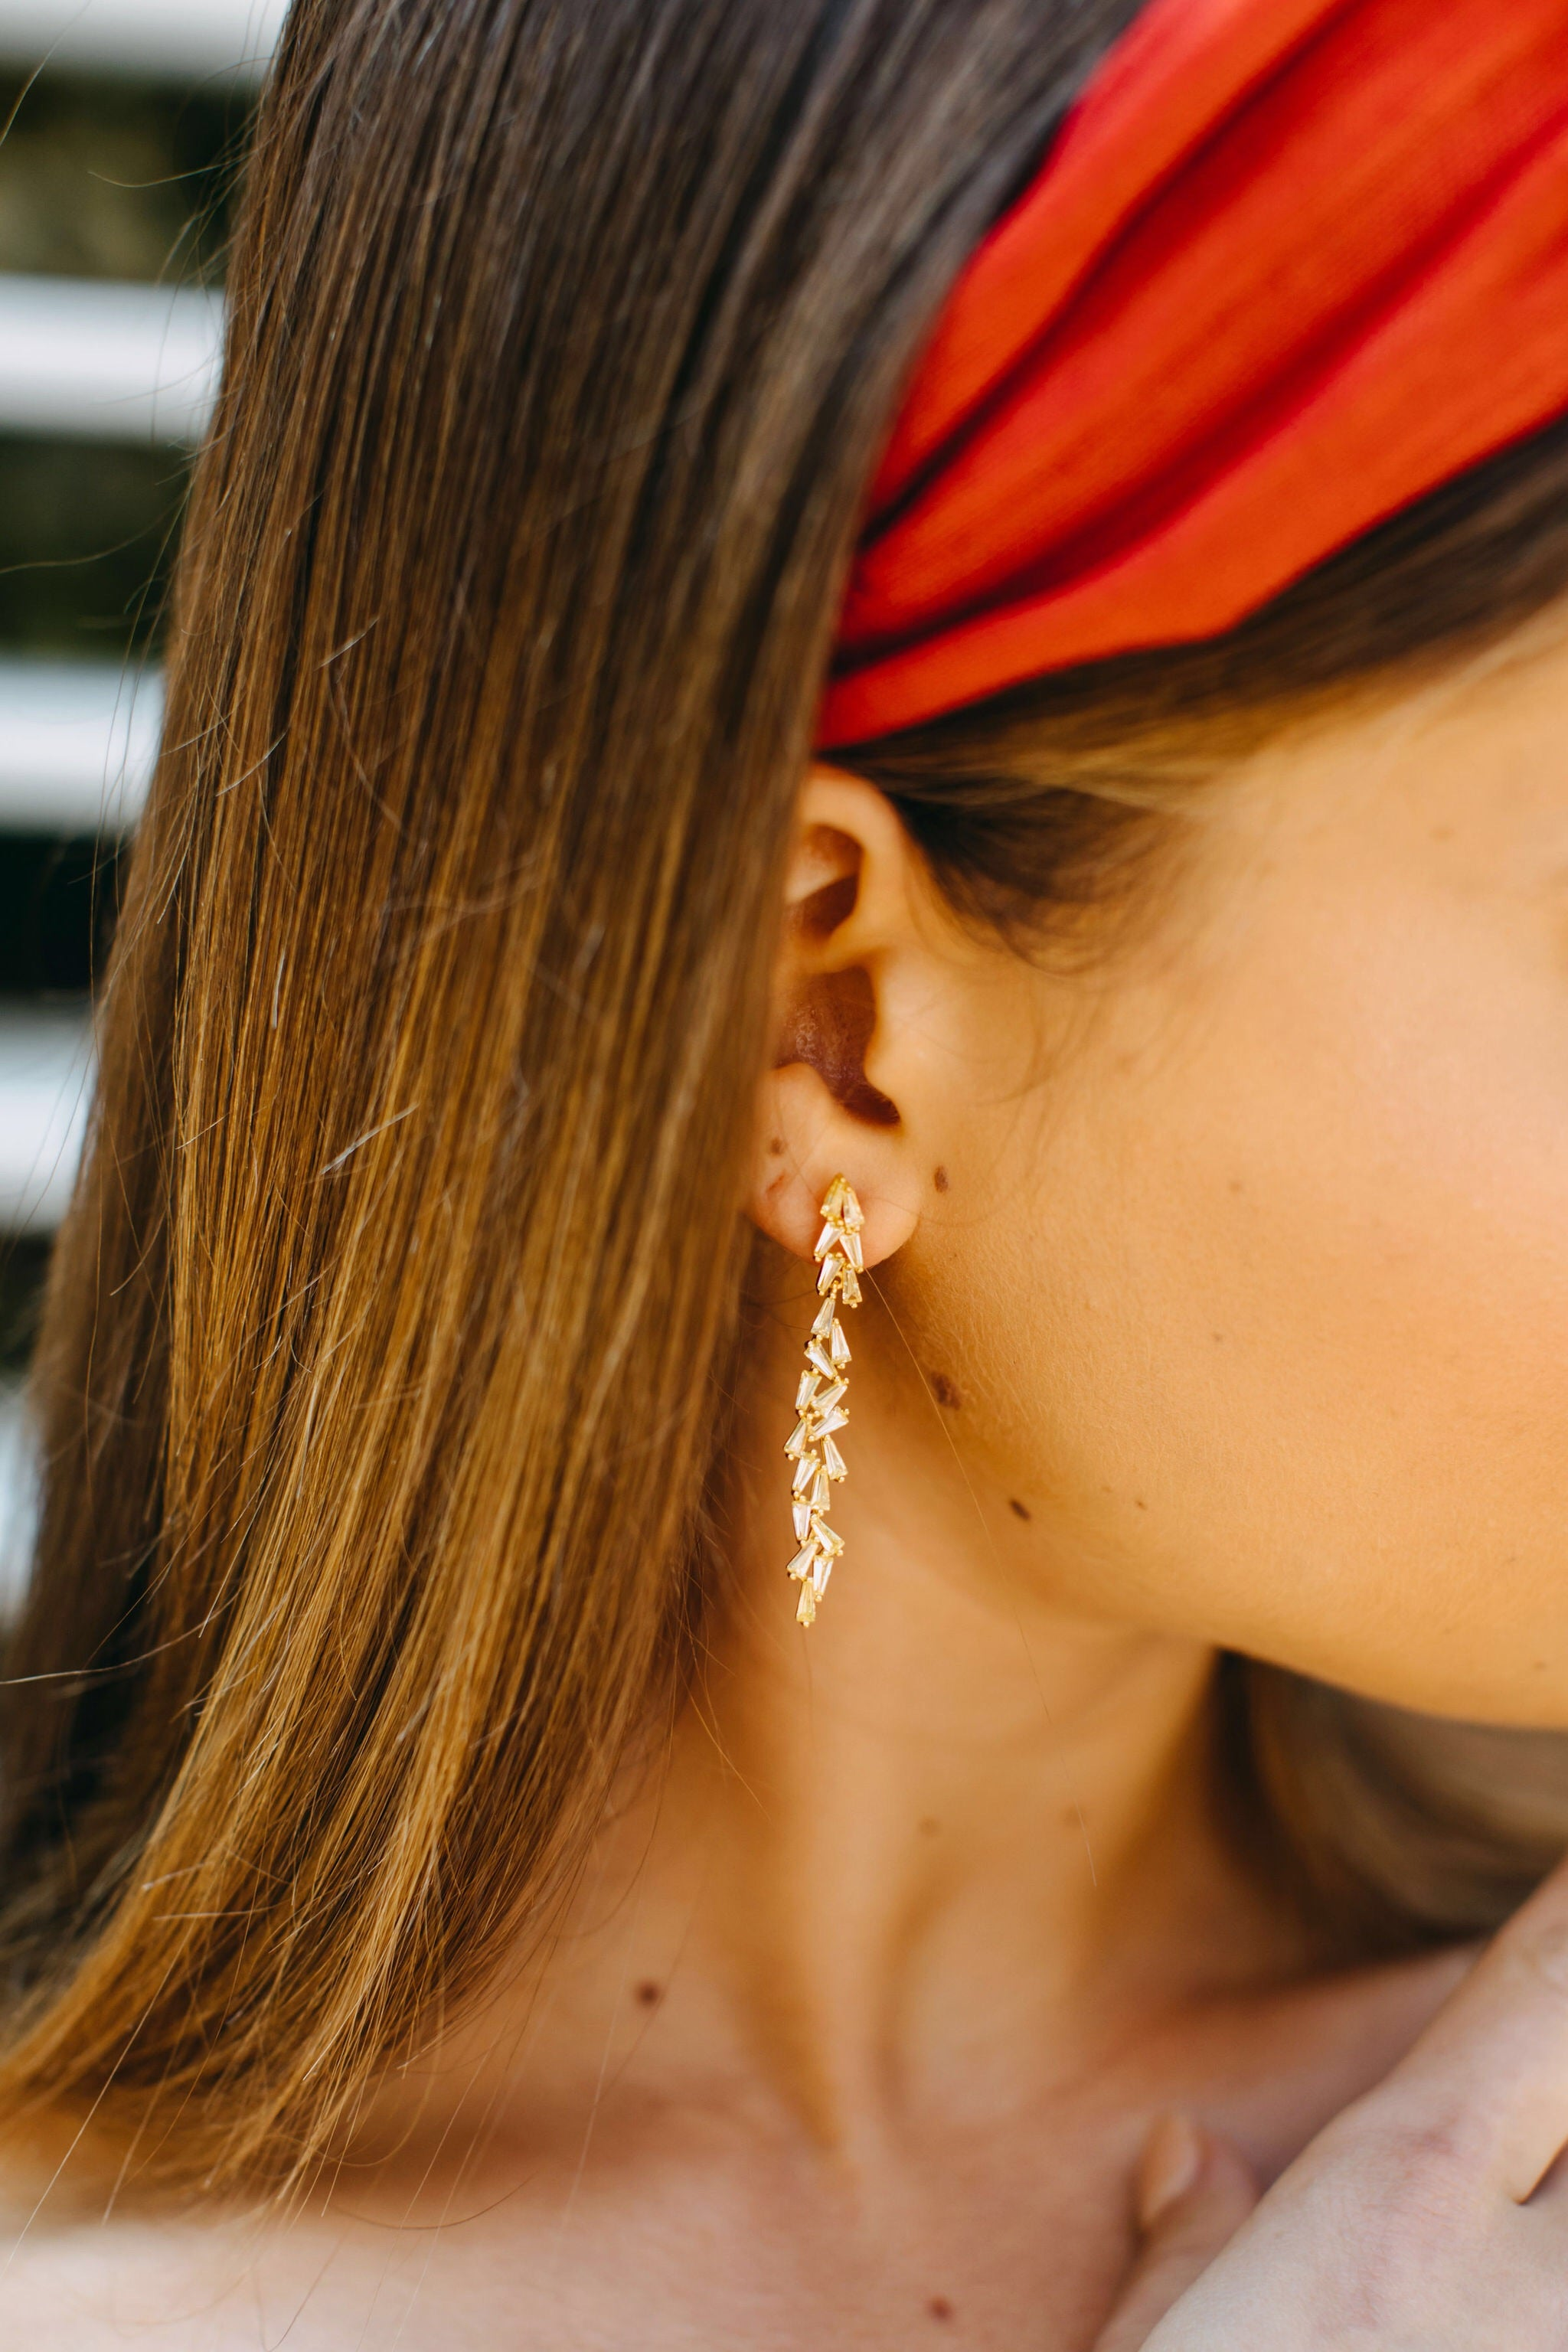 Styled image of our aurora earrings from the side view, worn on the ear of a brunette woman wearing a red headband.